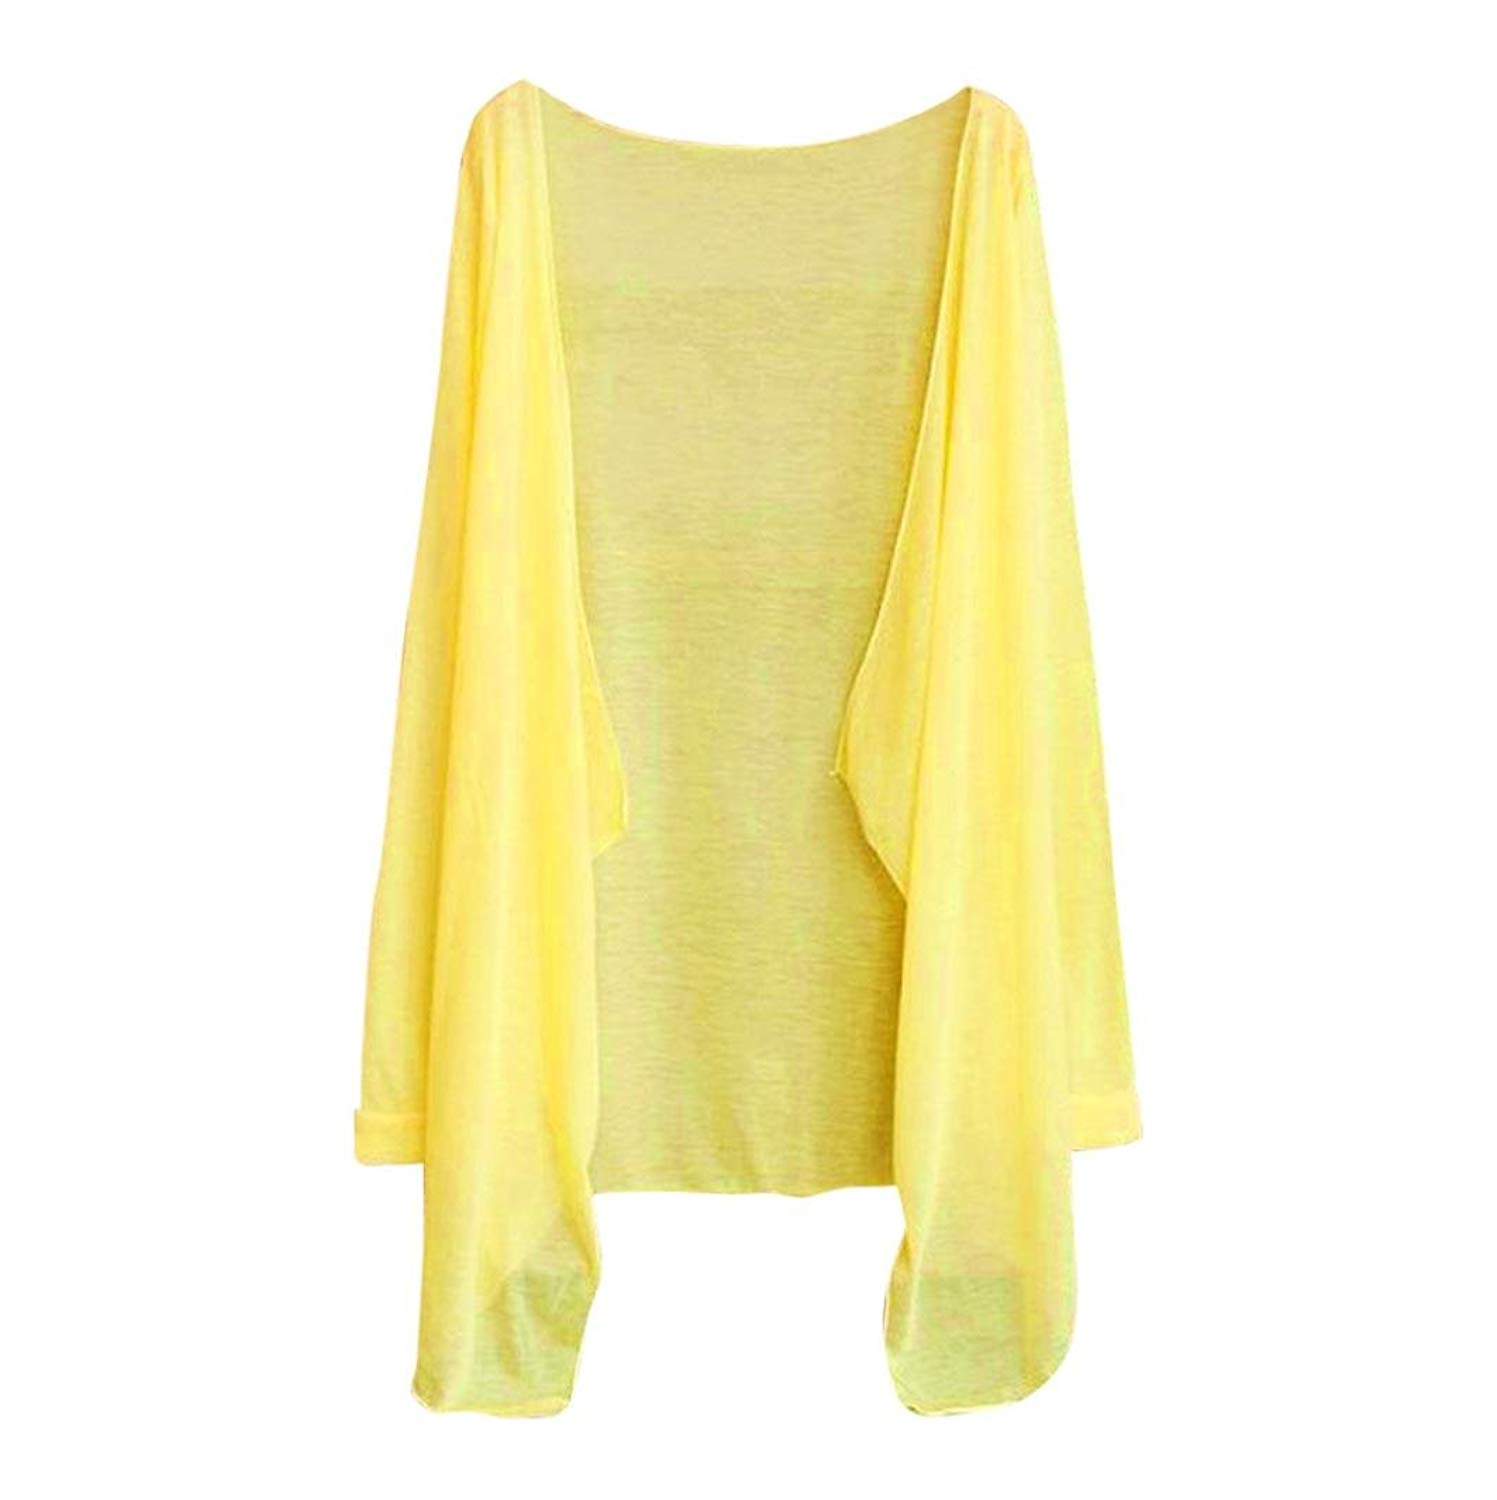 Women Summer Long Thin Cardigan Modal Soft Sun Protection Clothing Tops Outwear